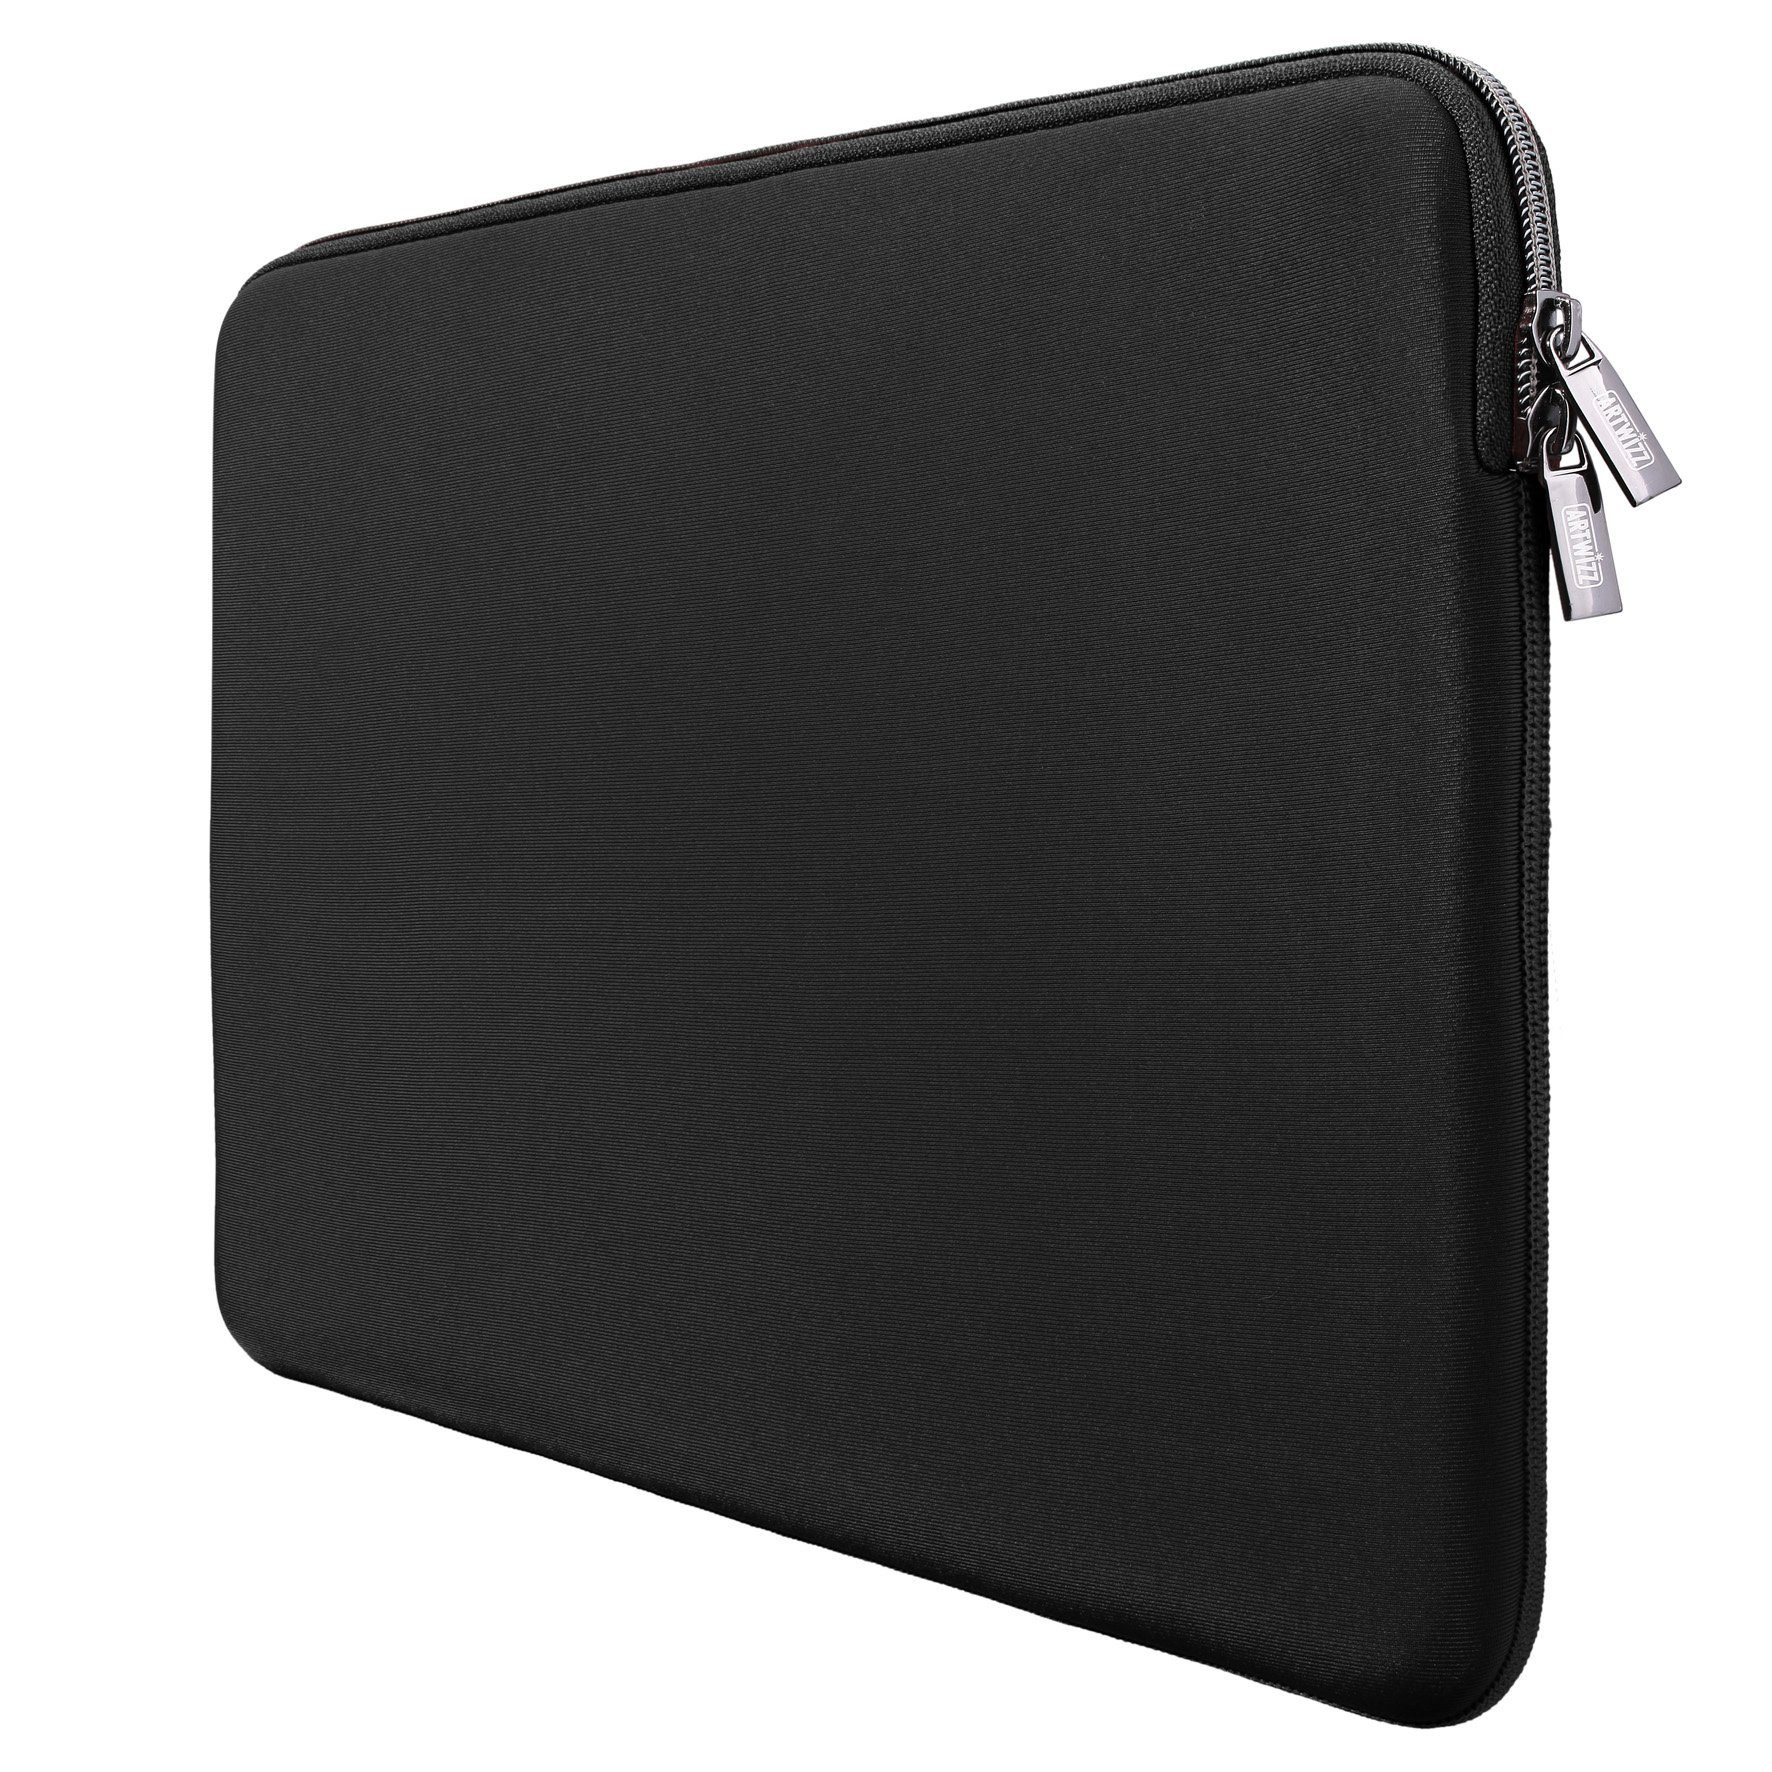 Artwizz Notebookhülle für MacBook Pro 15 Zoll Retina Display »Neoprene Sleeve«